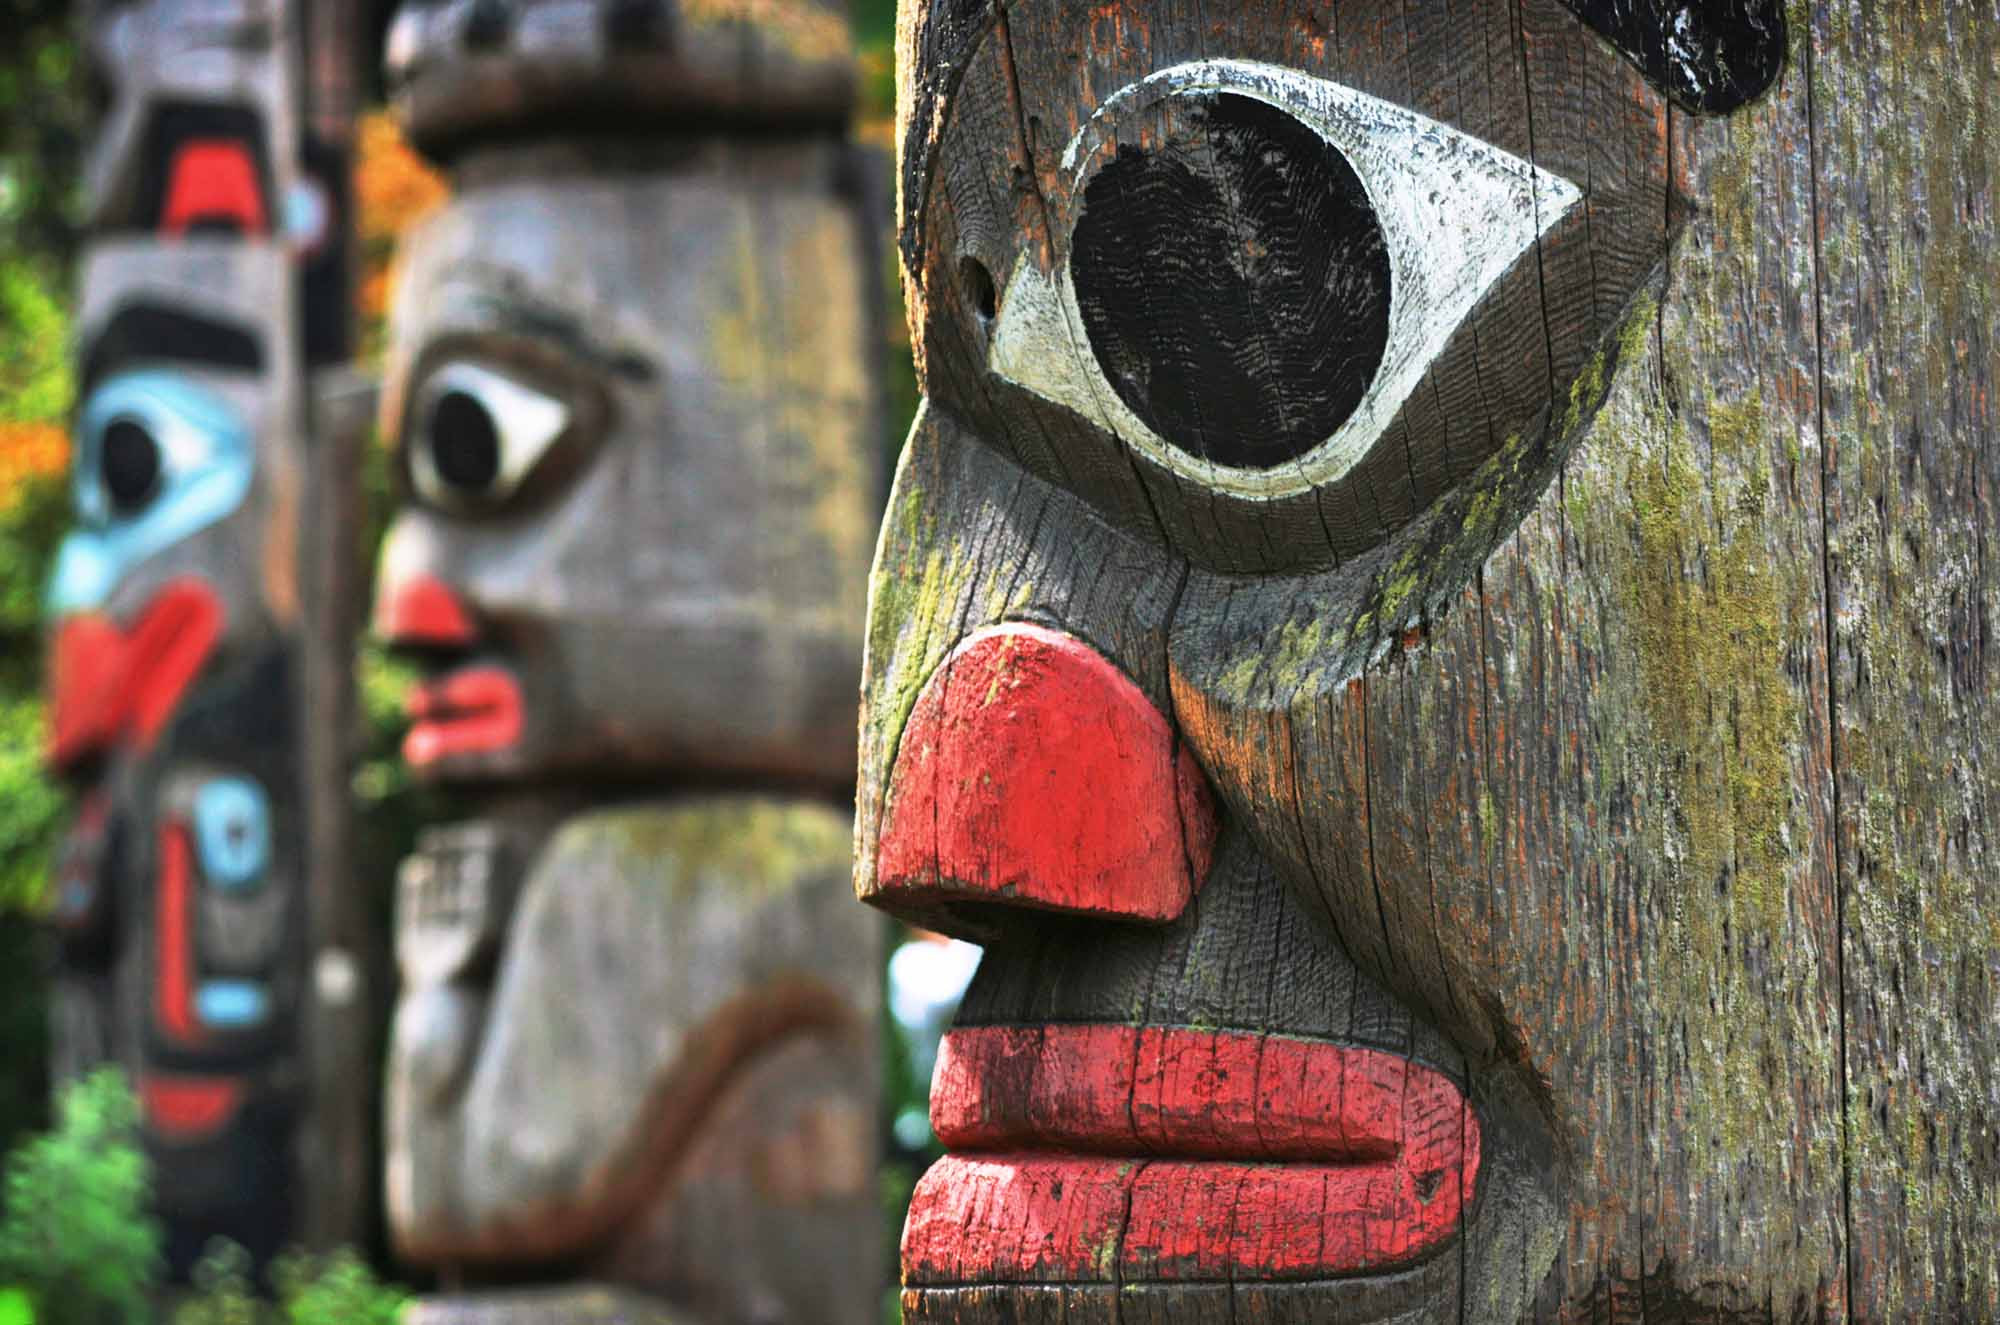 Working with Totems